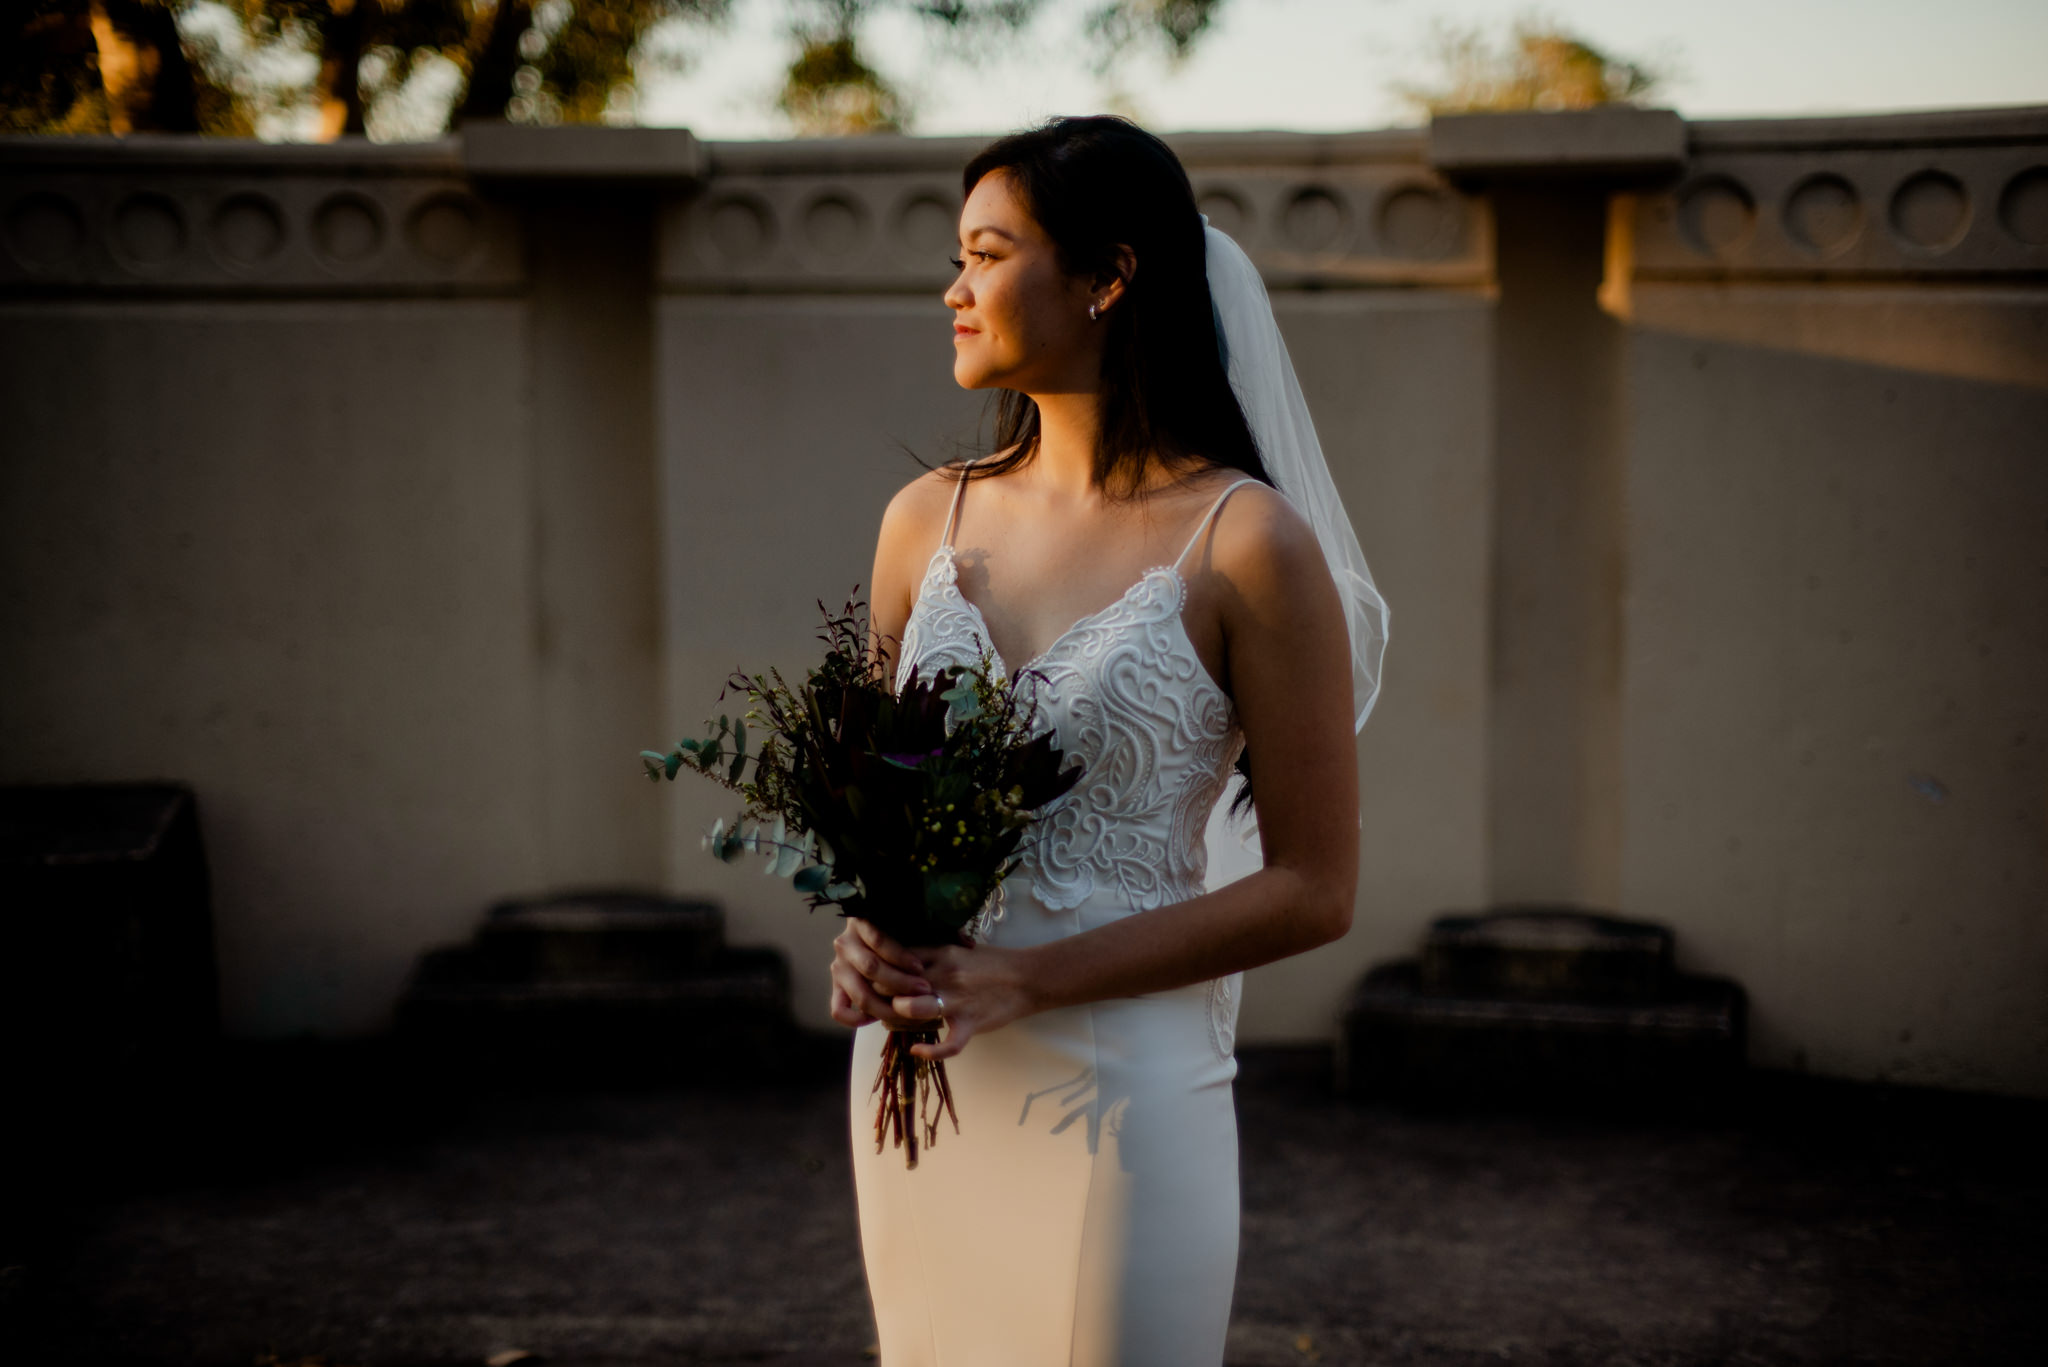 A bride poses with her wedding bouquet in a splash of golden sunlight